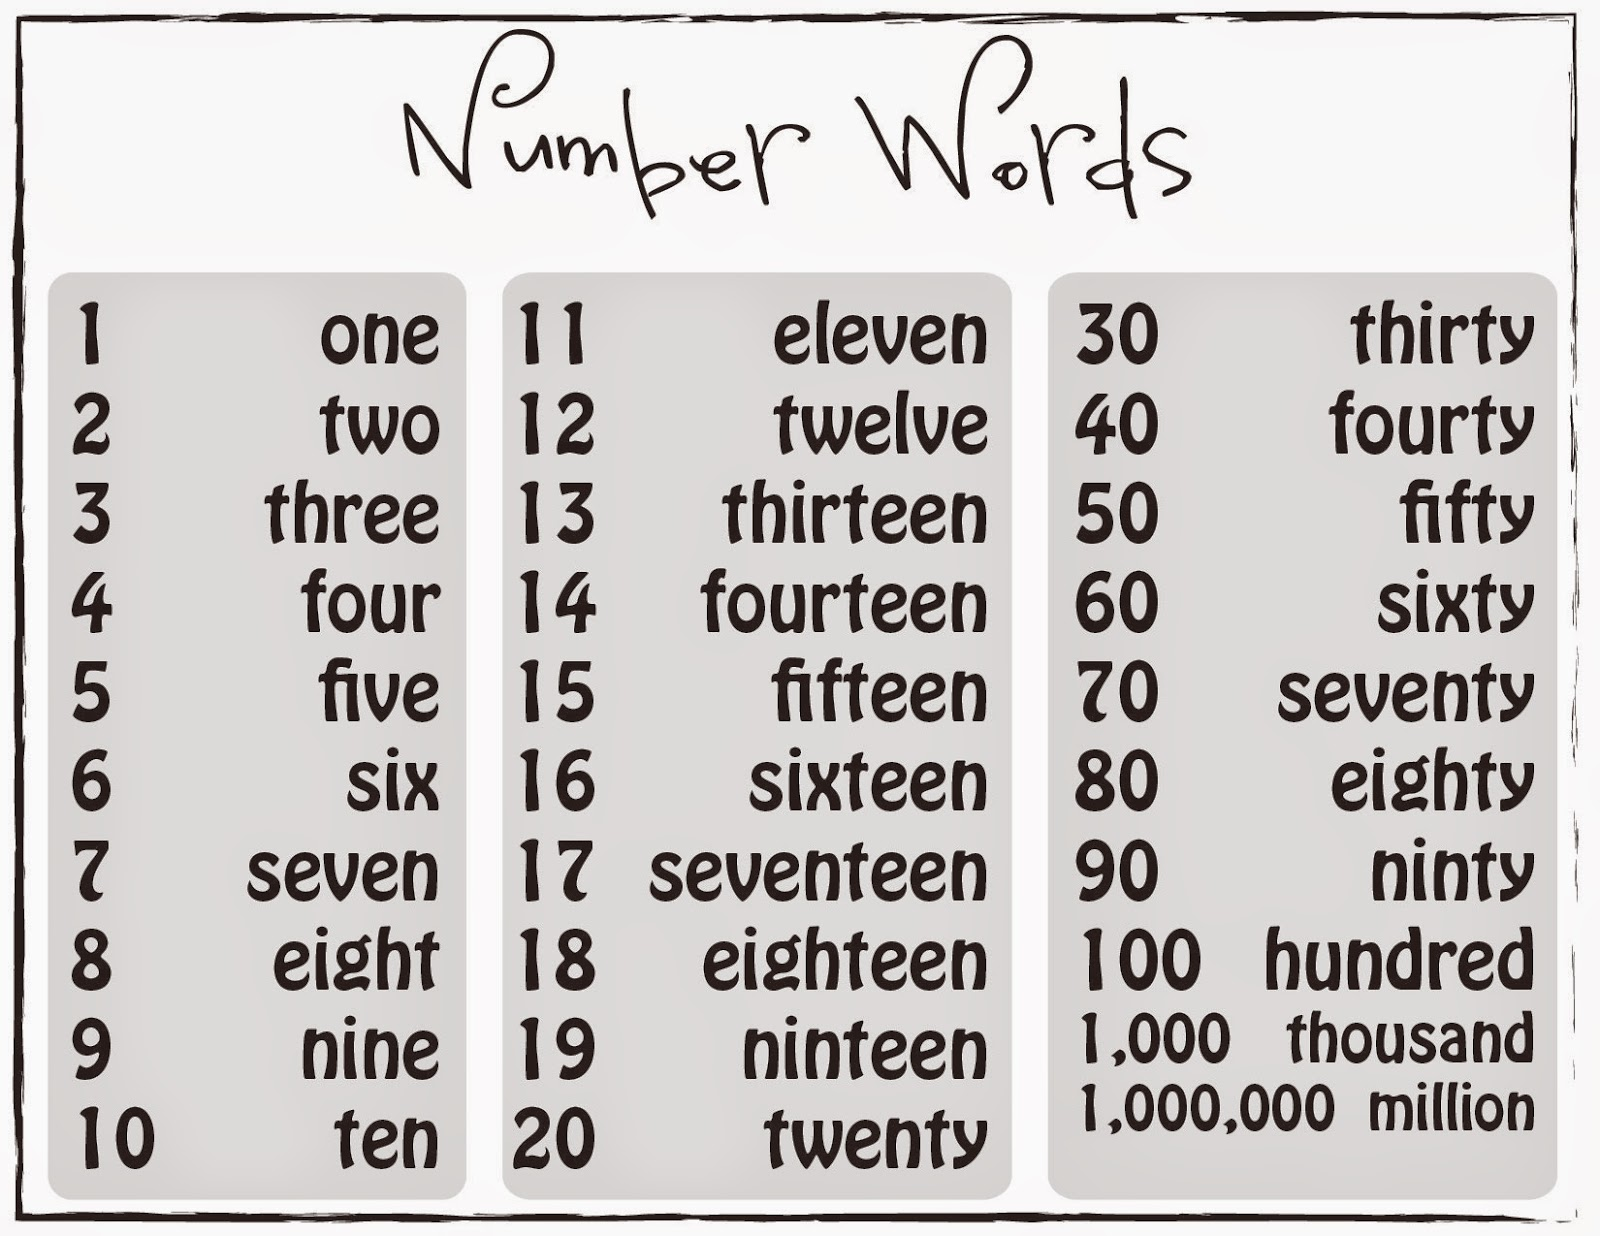 Worksheet Printable Number Words learning studio 79 and 80 october 20 2014 practice your number words at home for spelling